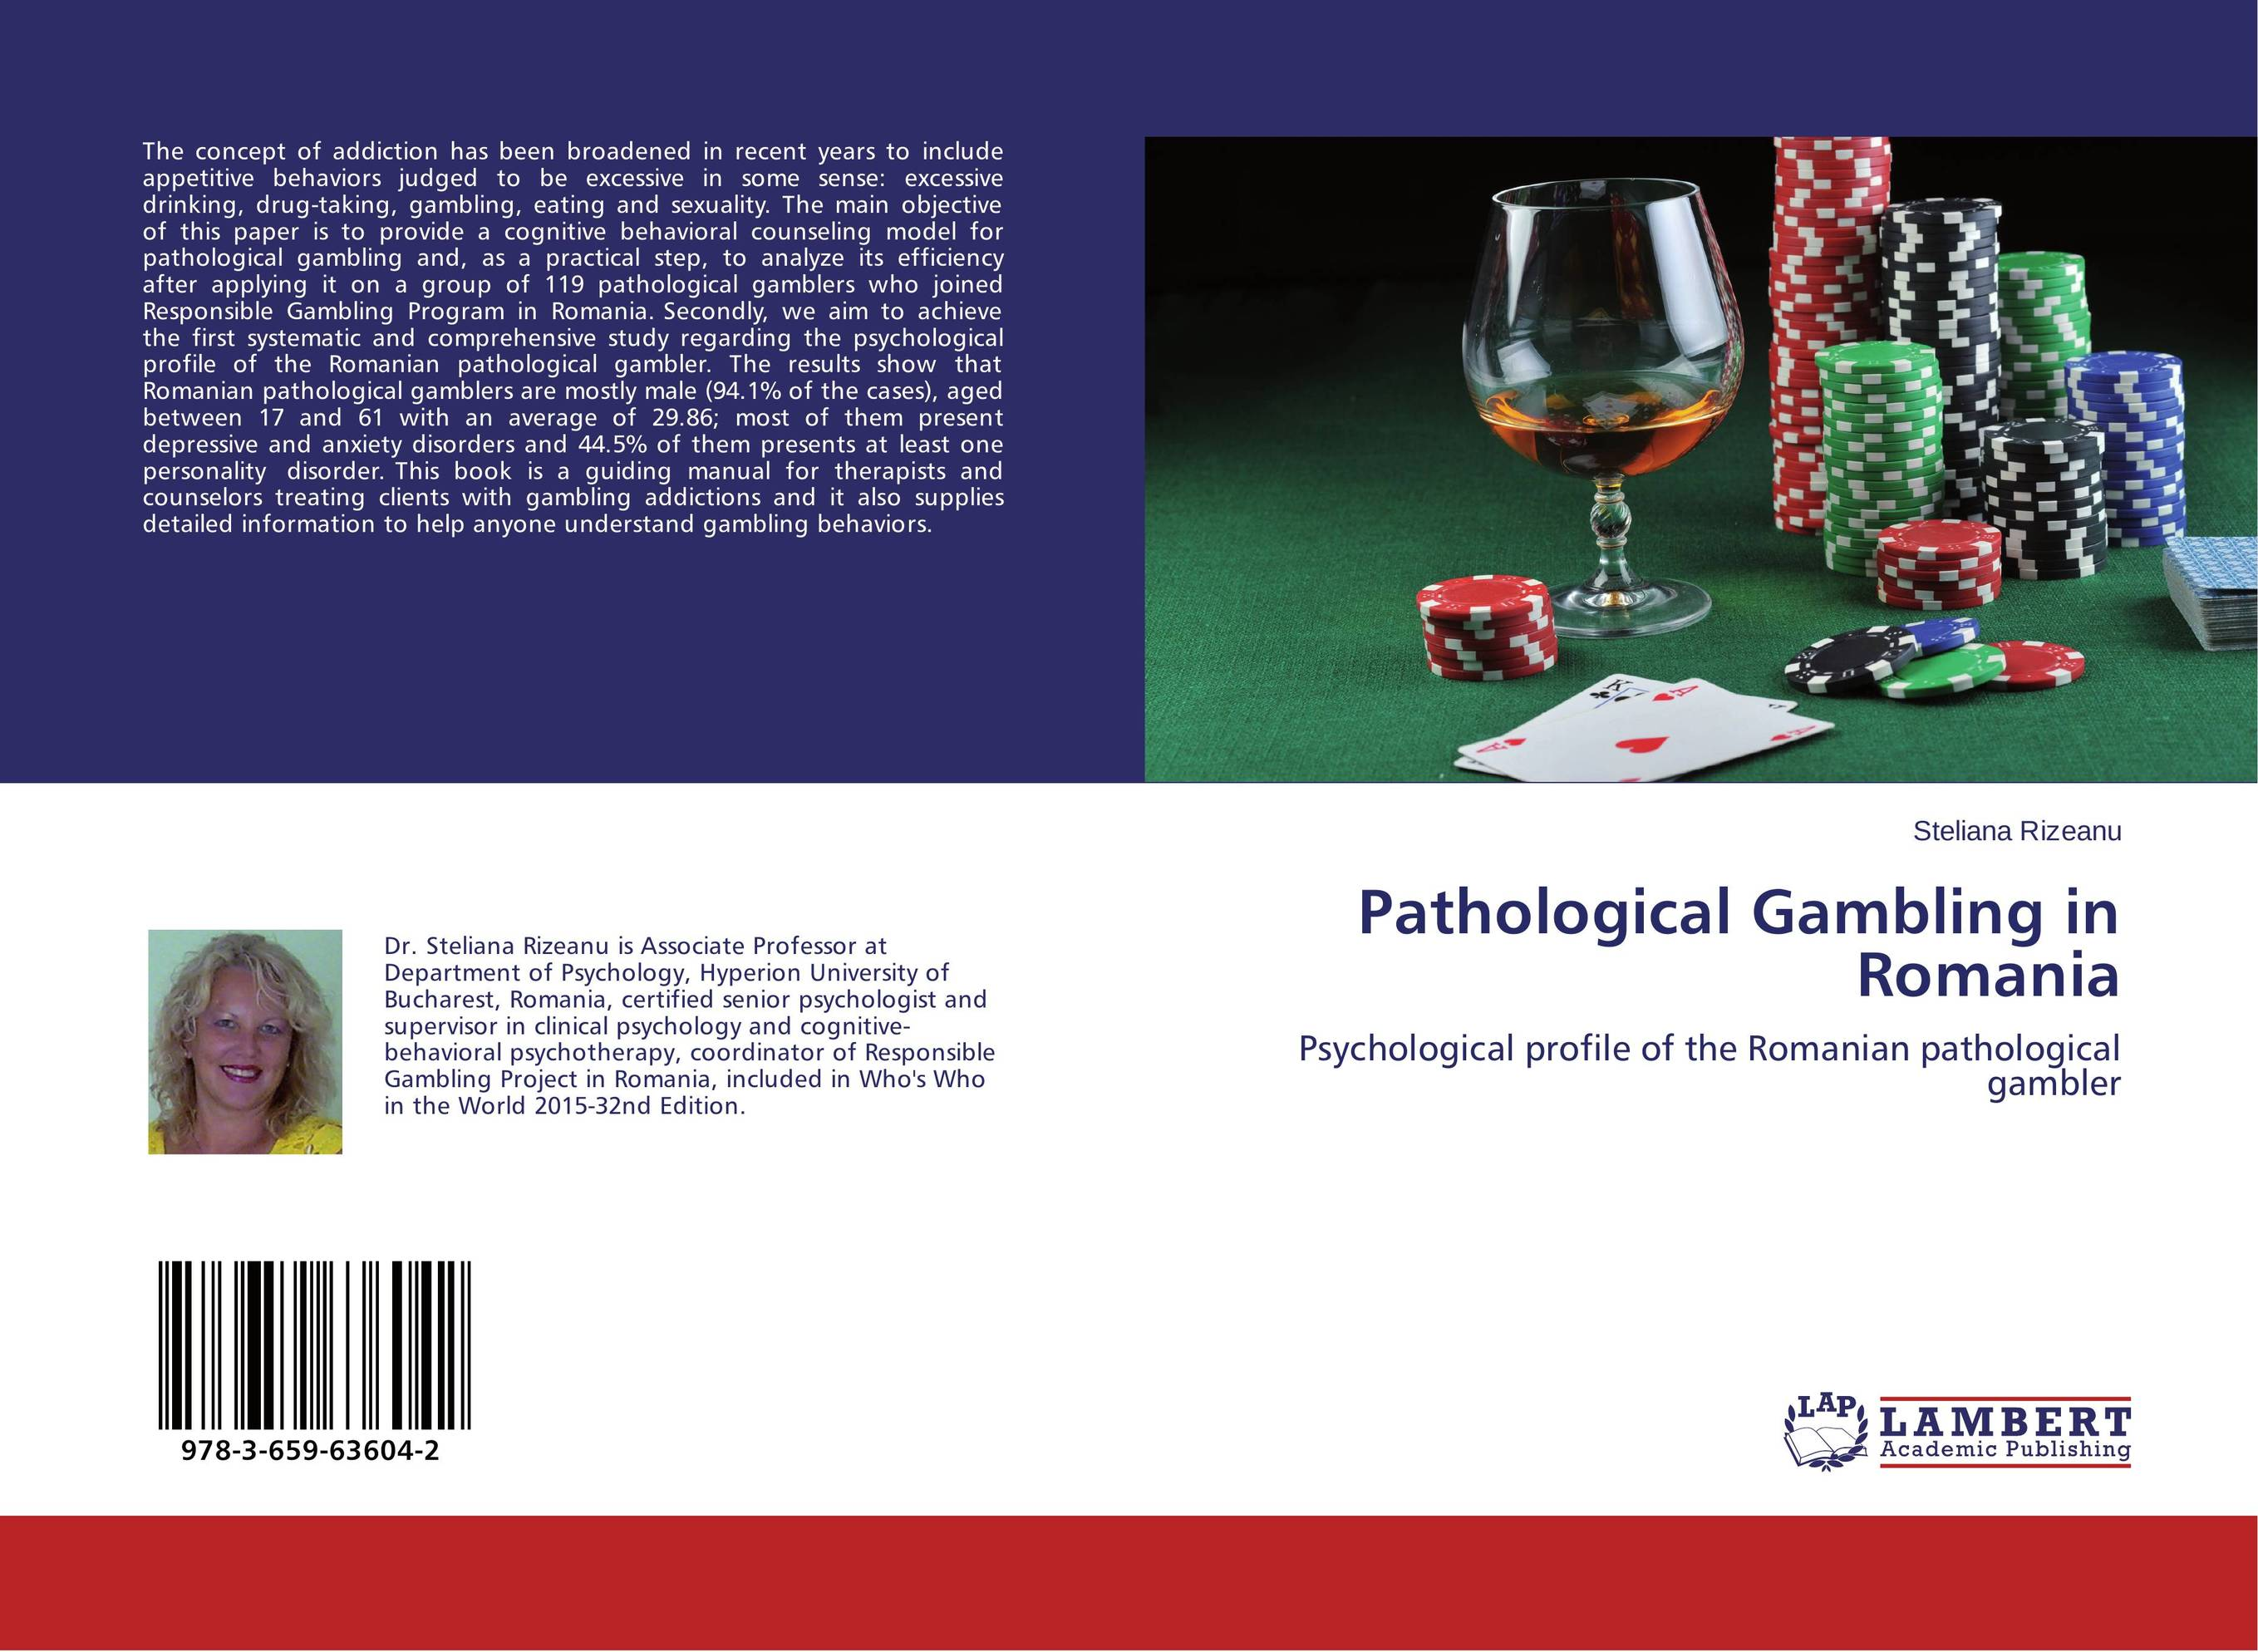 Pathological Gambling in Romania neurobiology of addictions